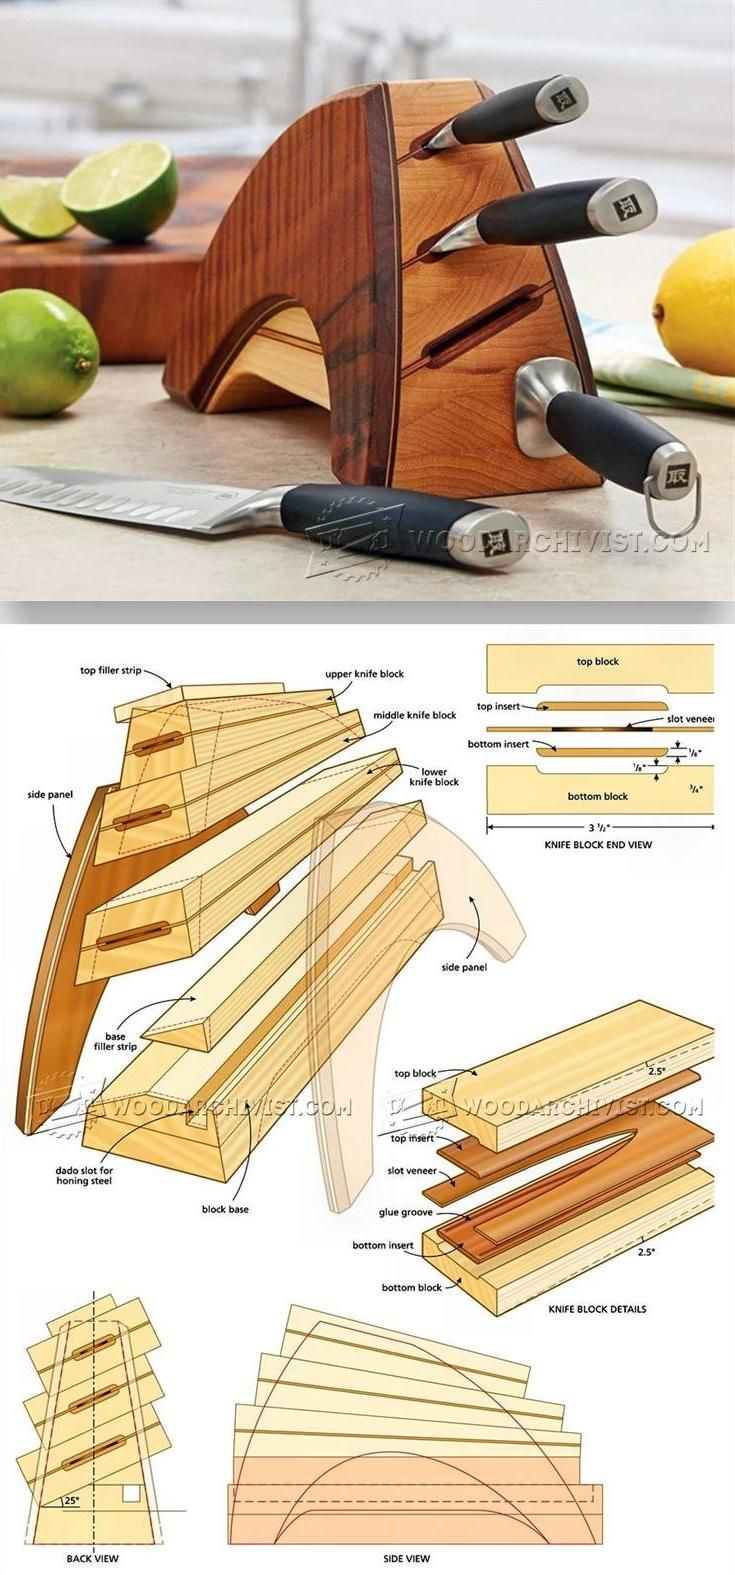 DIY Knife Block - Woodworking Plans and Projects | WoodArchivist.com